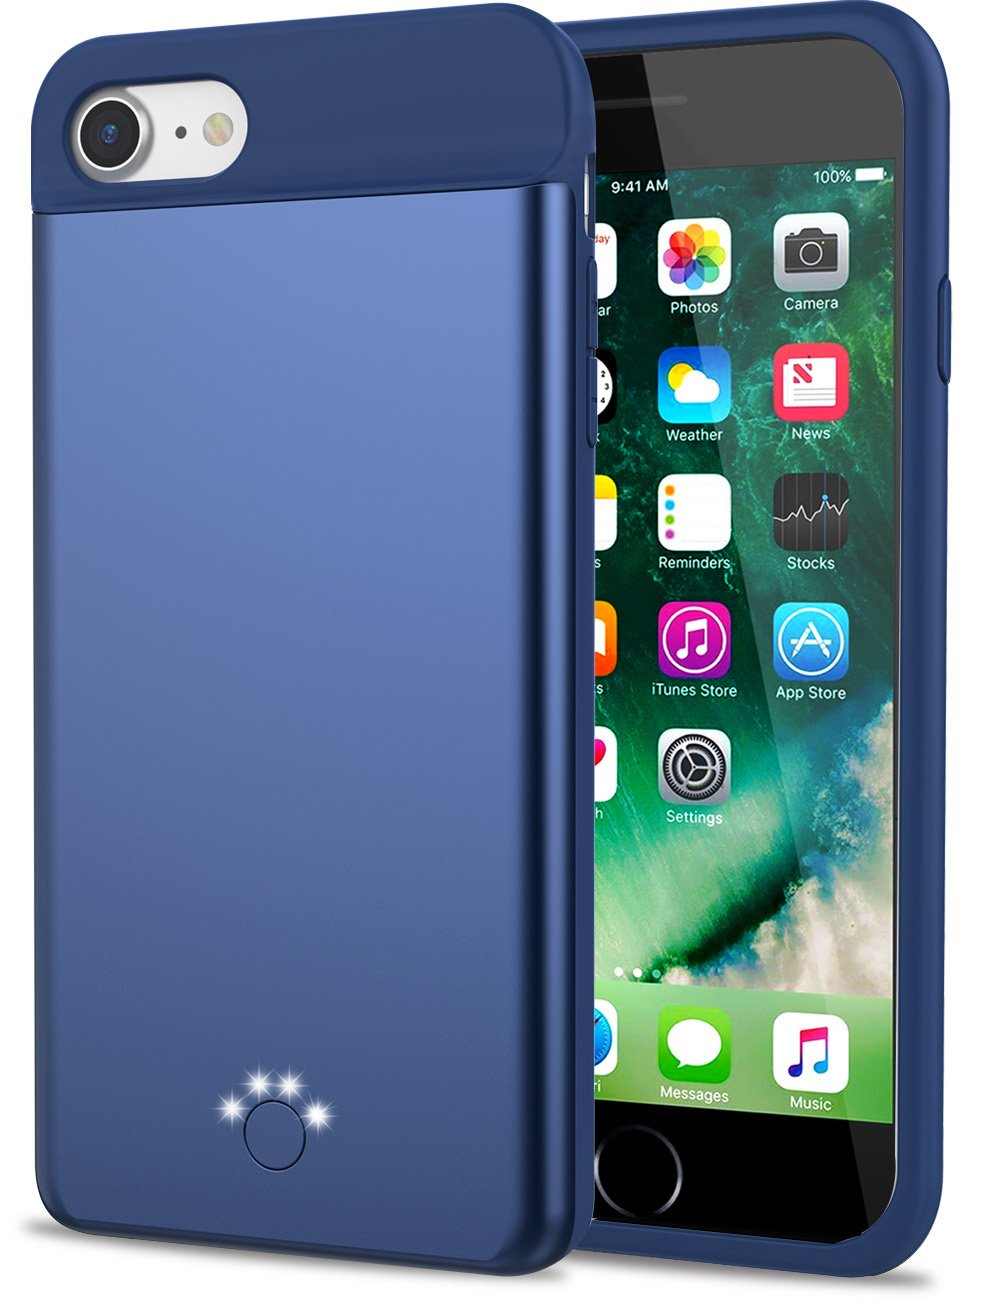 Smpoe iPhone 7/8 Battery Case, Ultra Slim Rechargeable Portable Charging Case for iPhone 8/7 / 6 / 6s External Battery Backup Case/Extra 100% Battery (Blue)